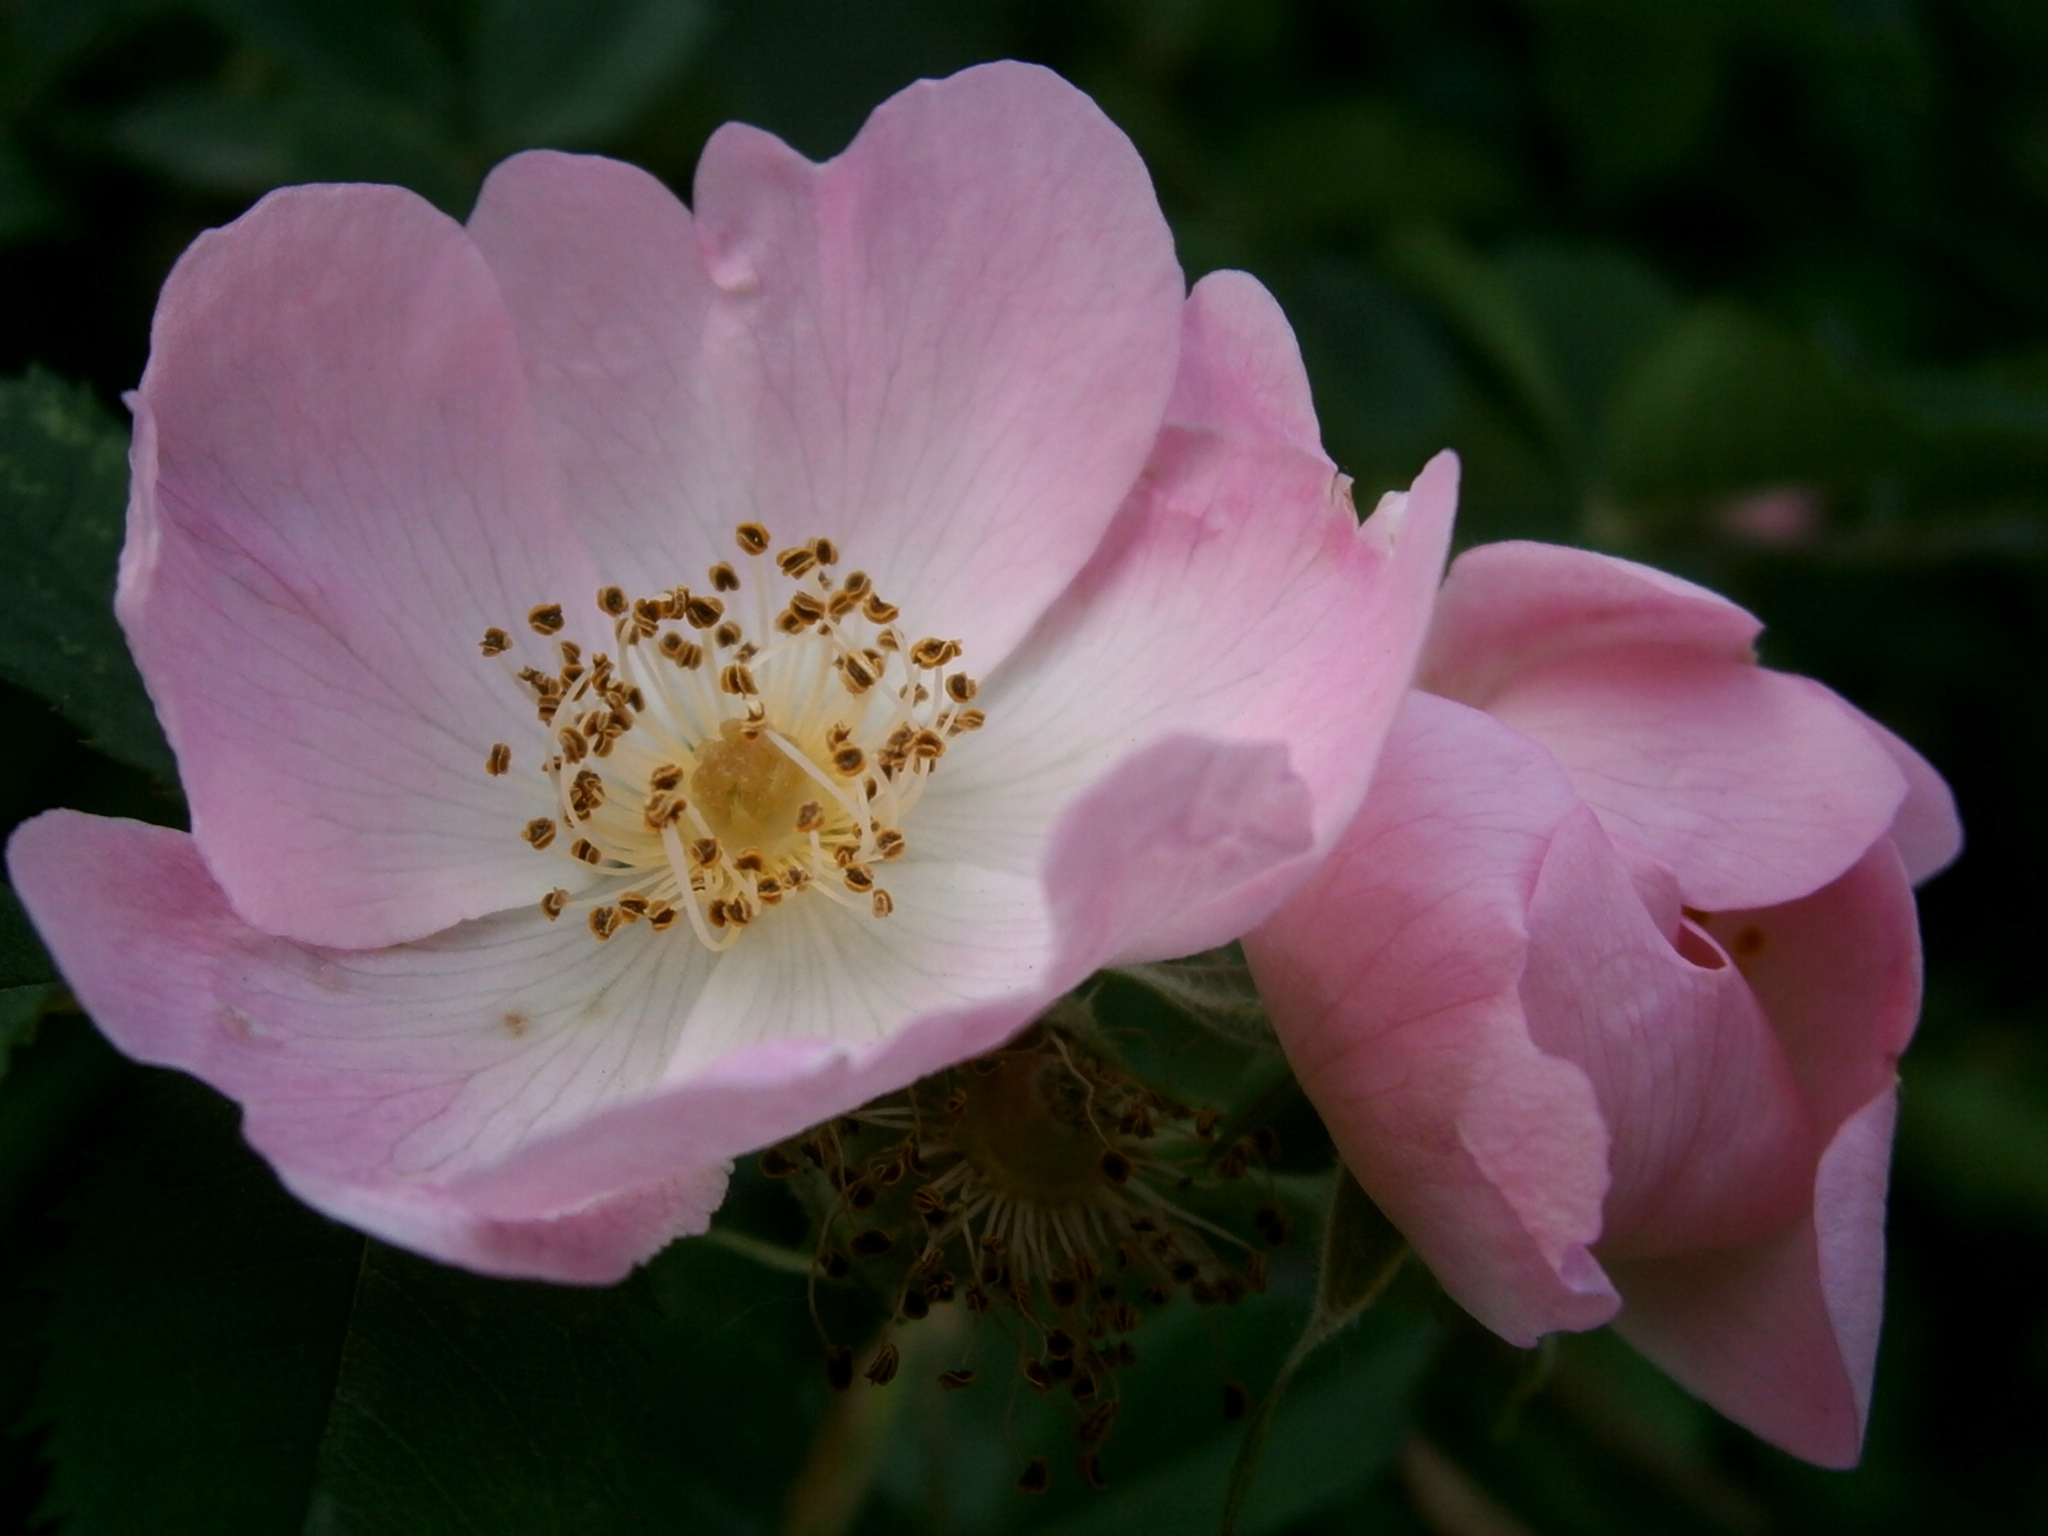 Close-up shot of pale pink pavement roses (dog roses, salt-spray roses) with green leaves as the blurry background. Photo by ThePantherAleo Courtesy of Wiki Media Commons